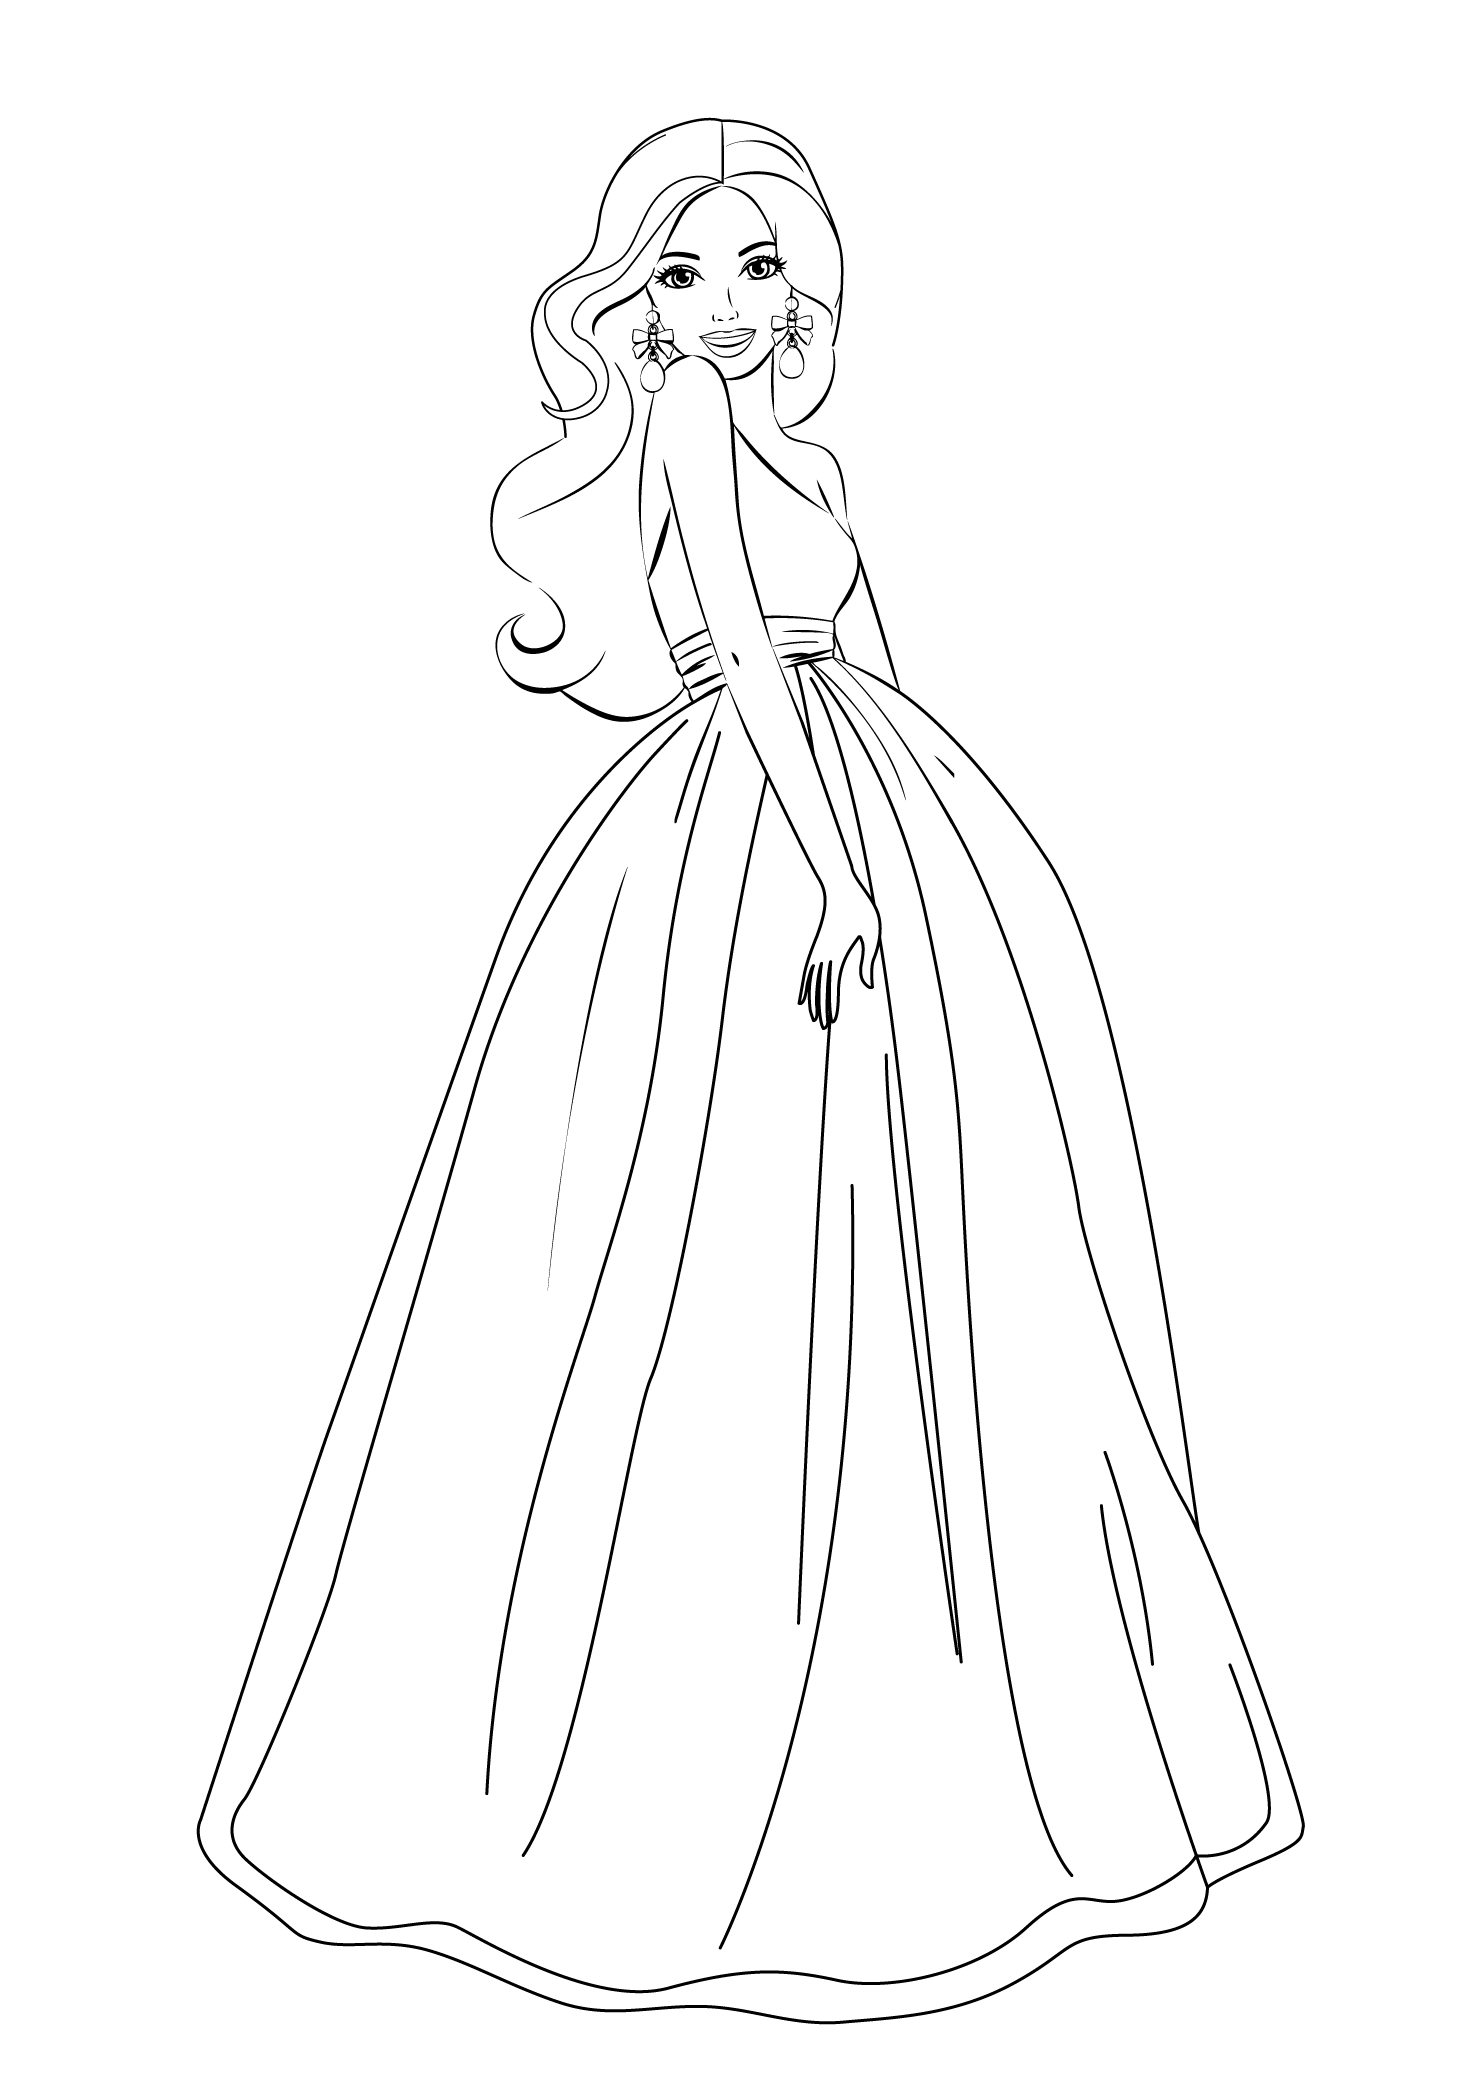 barbie coloring pages full size - photo#34